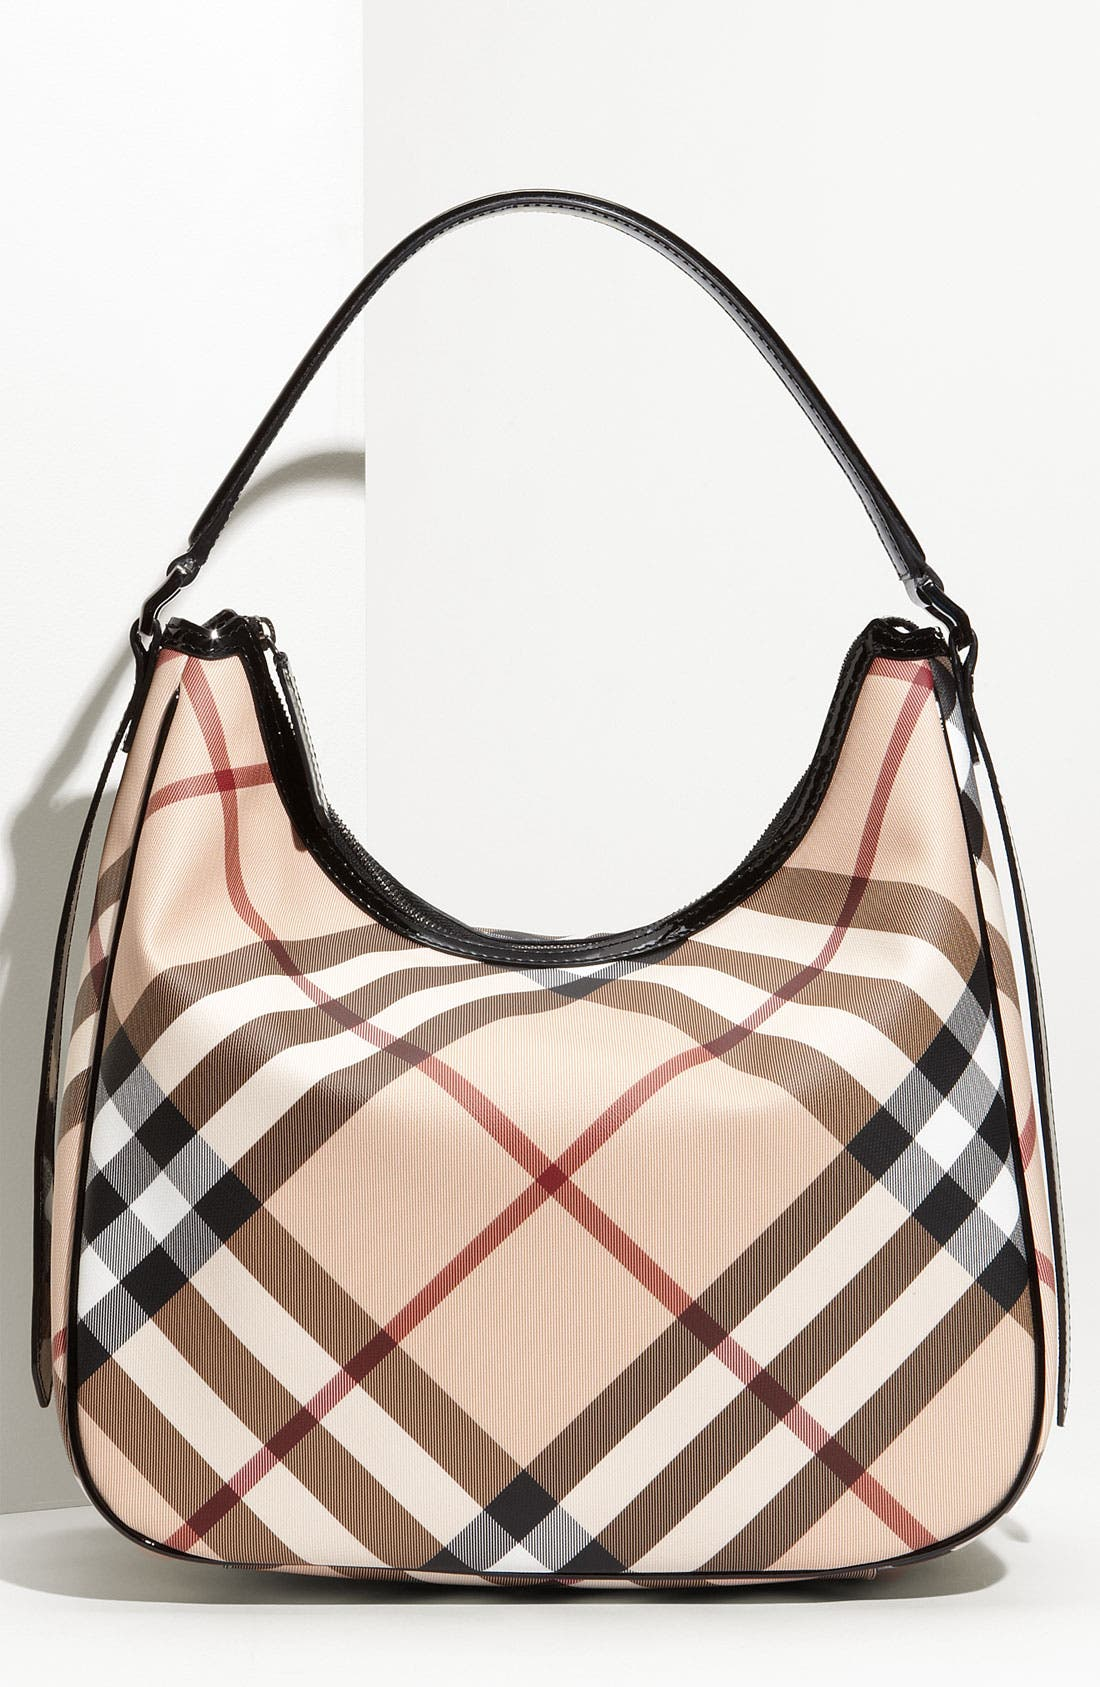 Main Image - Burberry 'Nova Check' Hobo